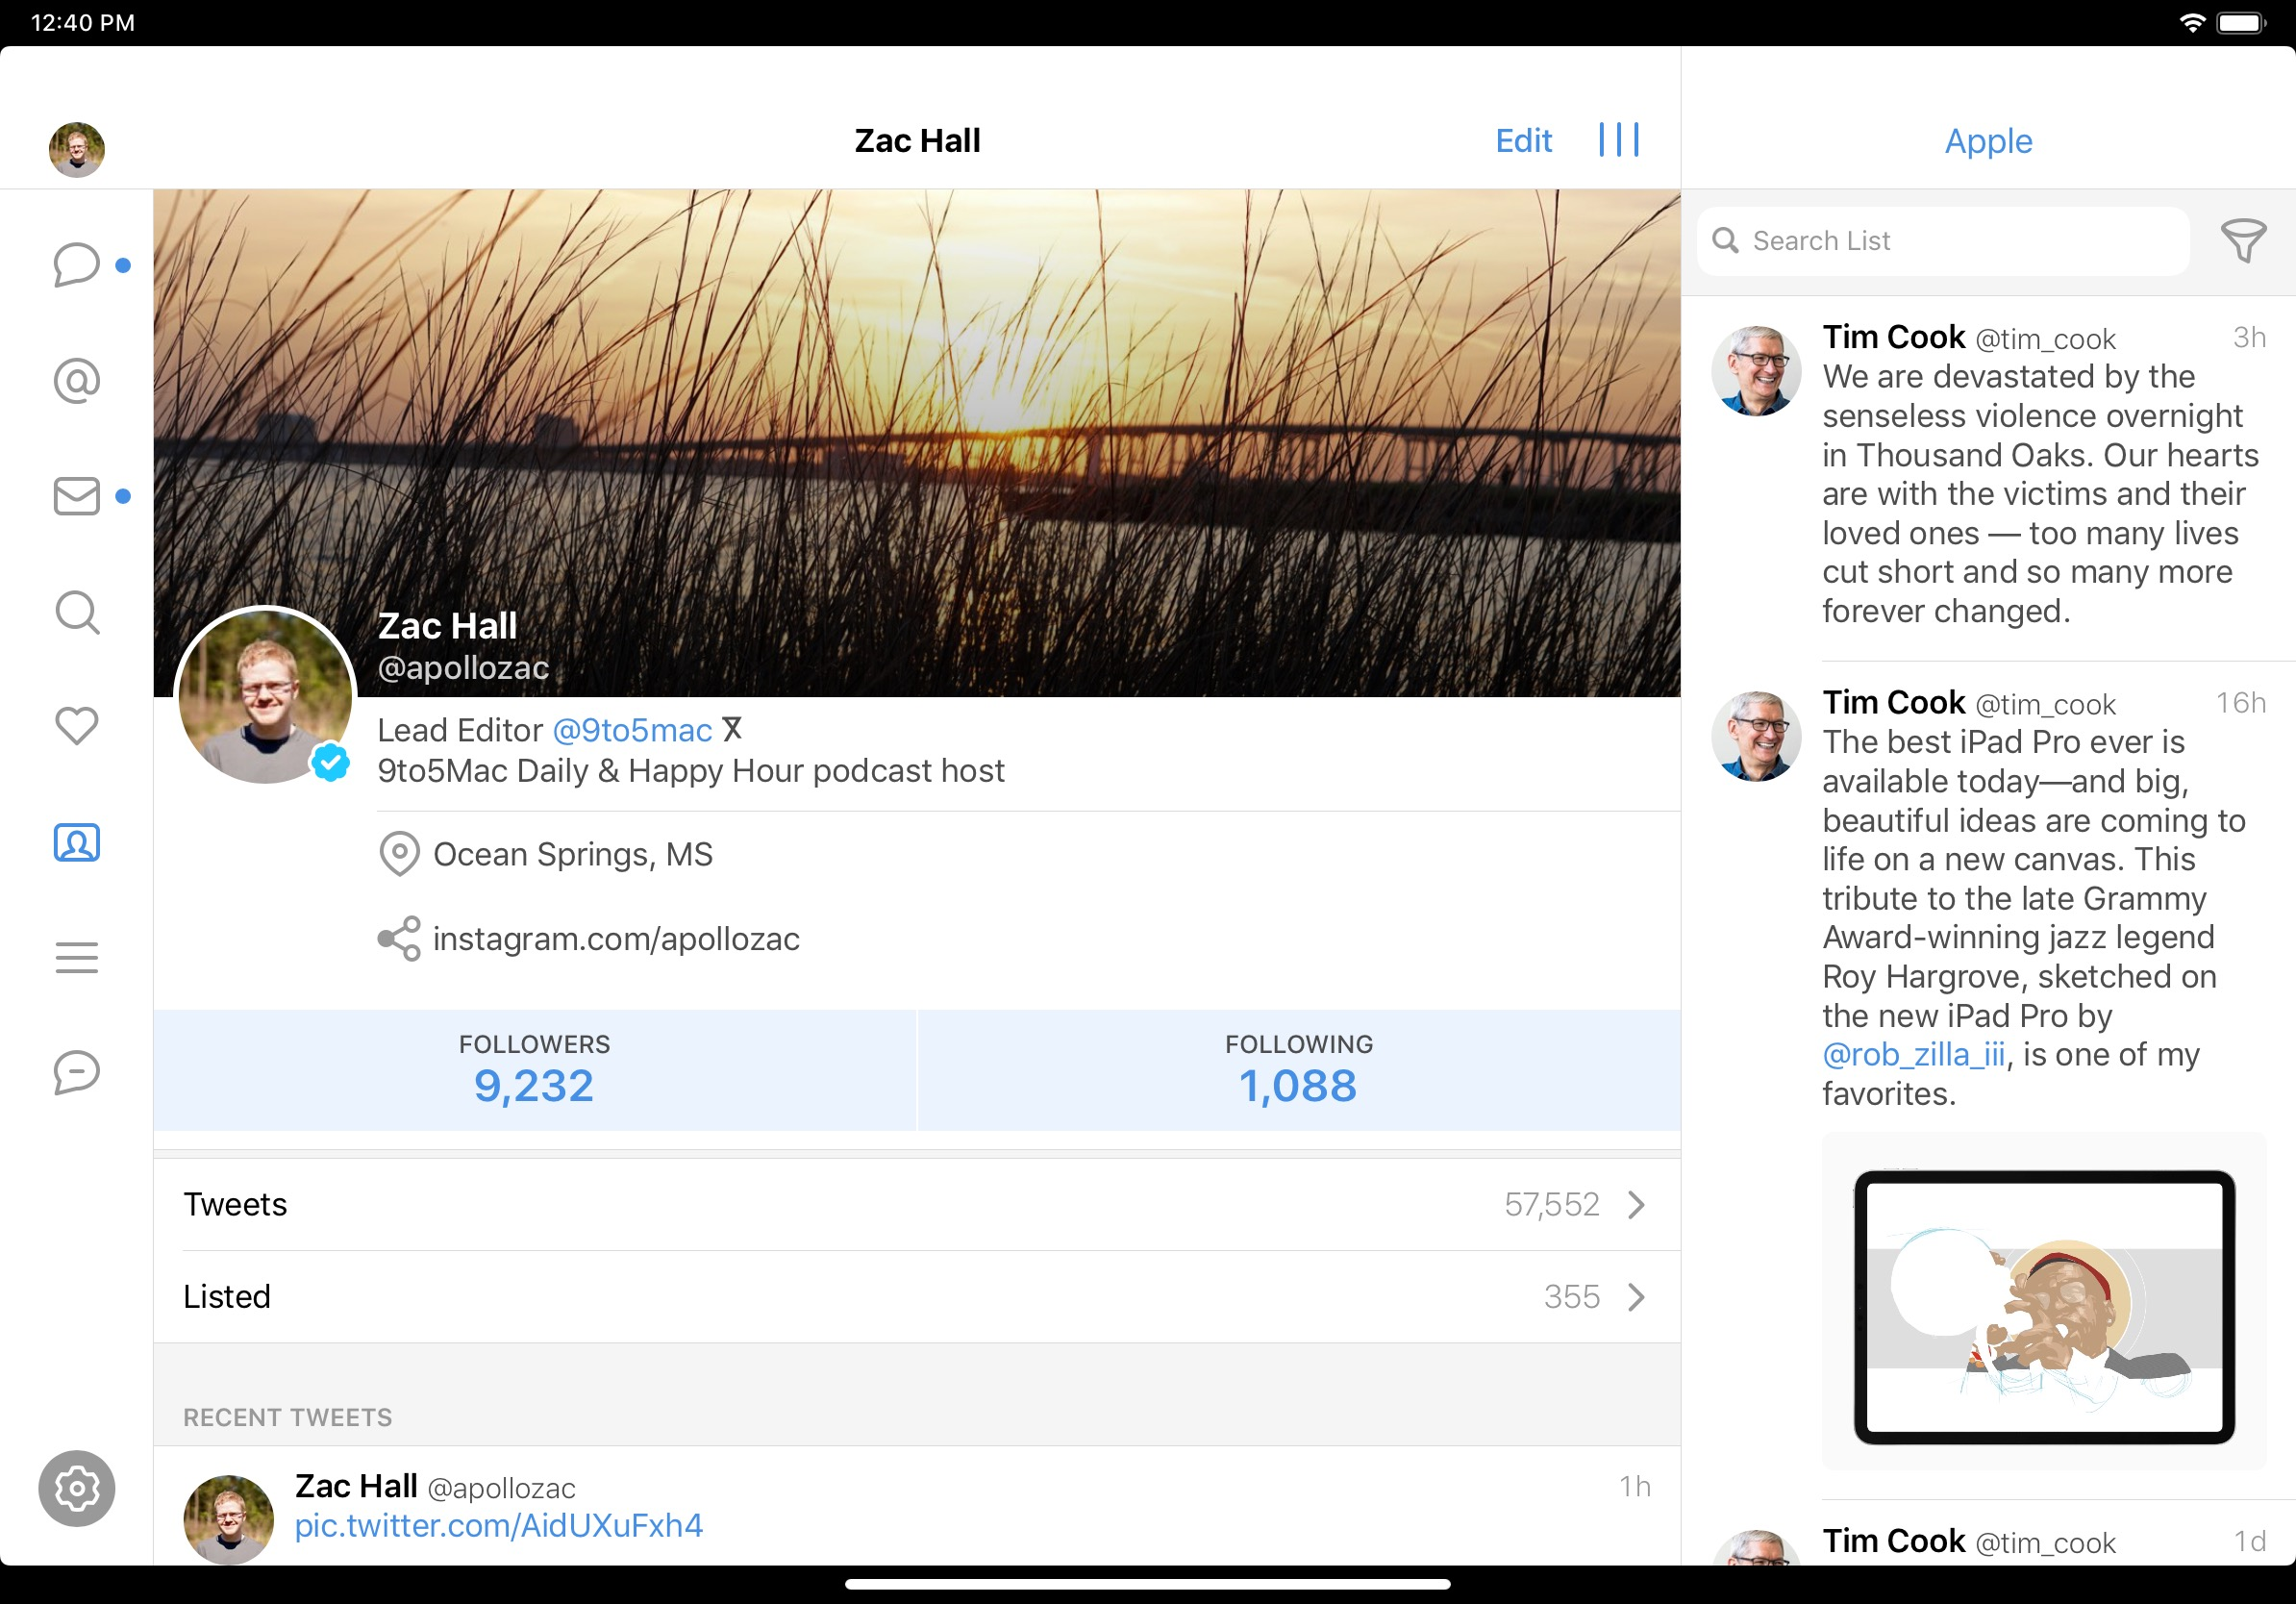 Tweetbot for iOS updated with optimization for new iPad Pro displays